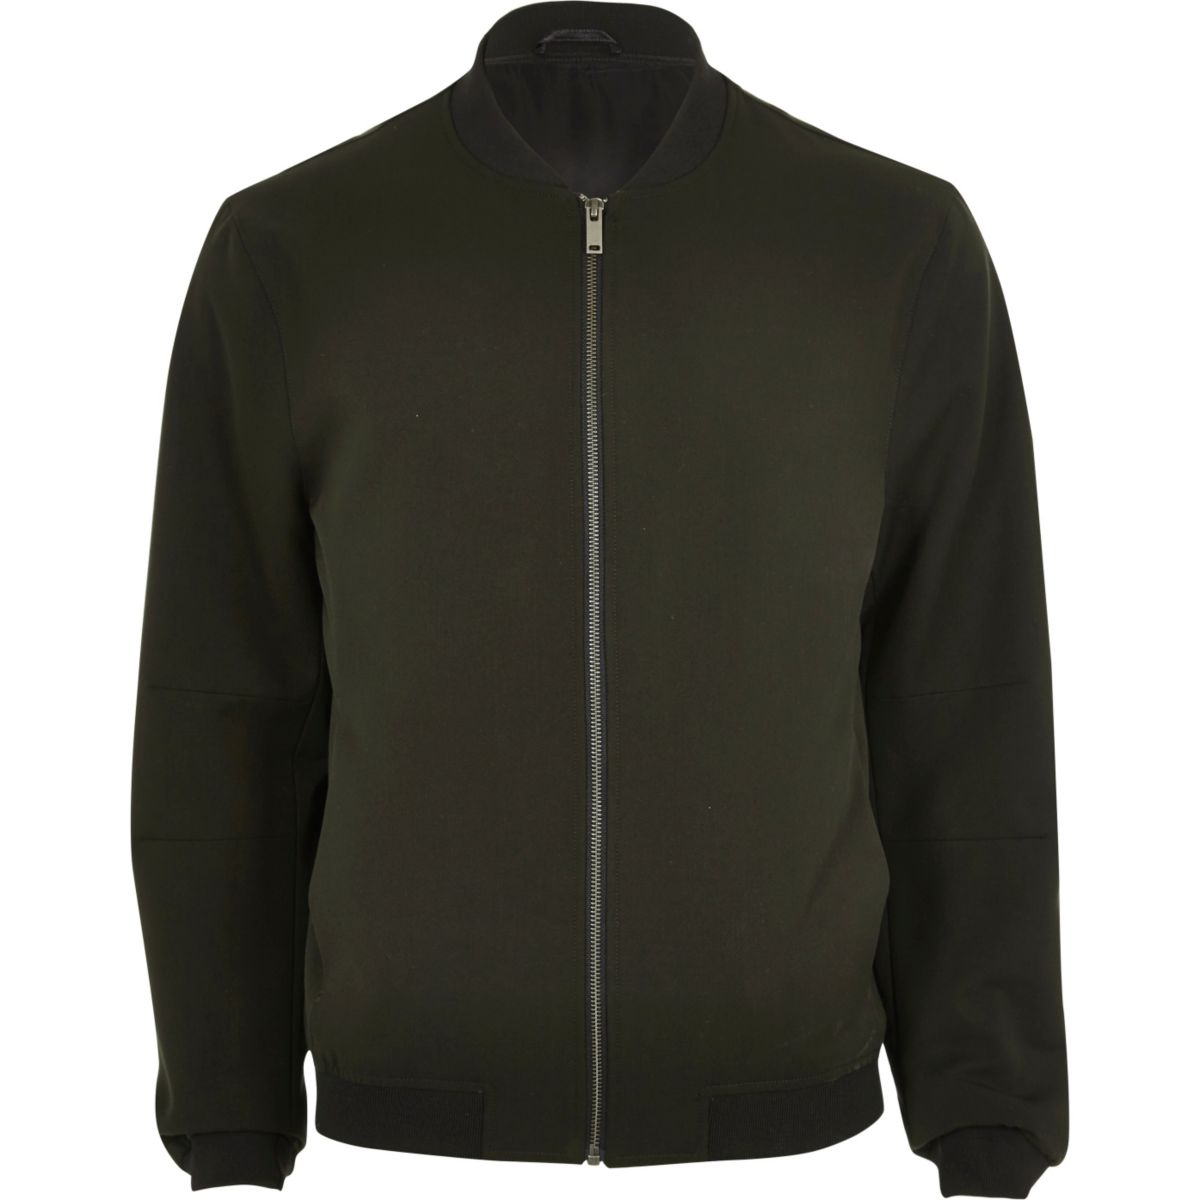 Dark green bomber jacket